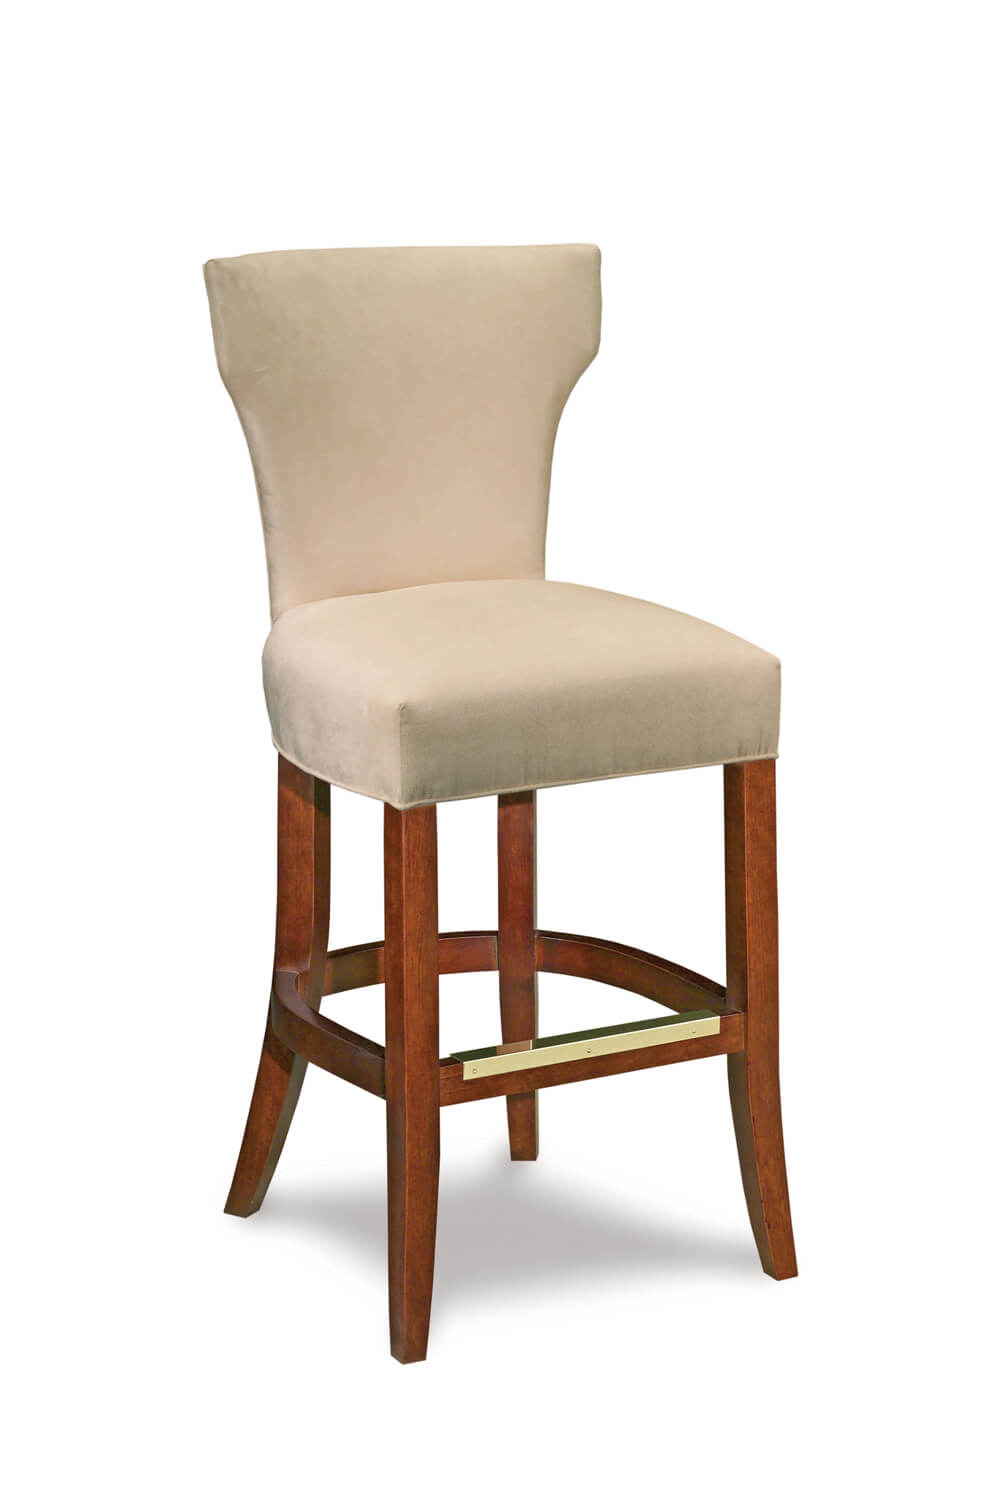 Fairfield Chair's Ardmore Transitional Armless Bar Stool with Back